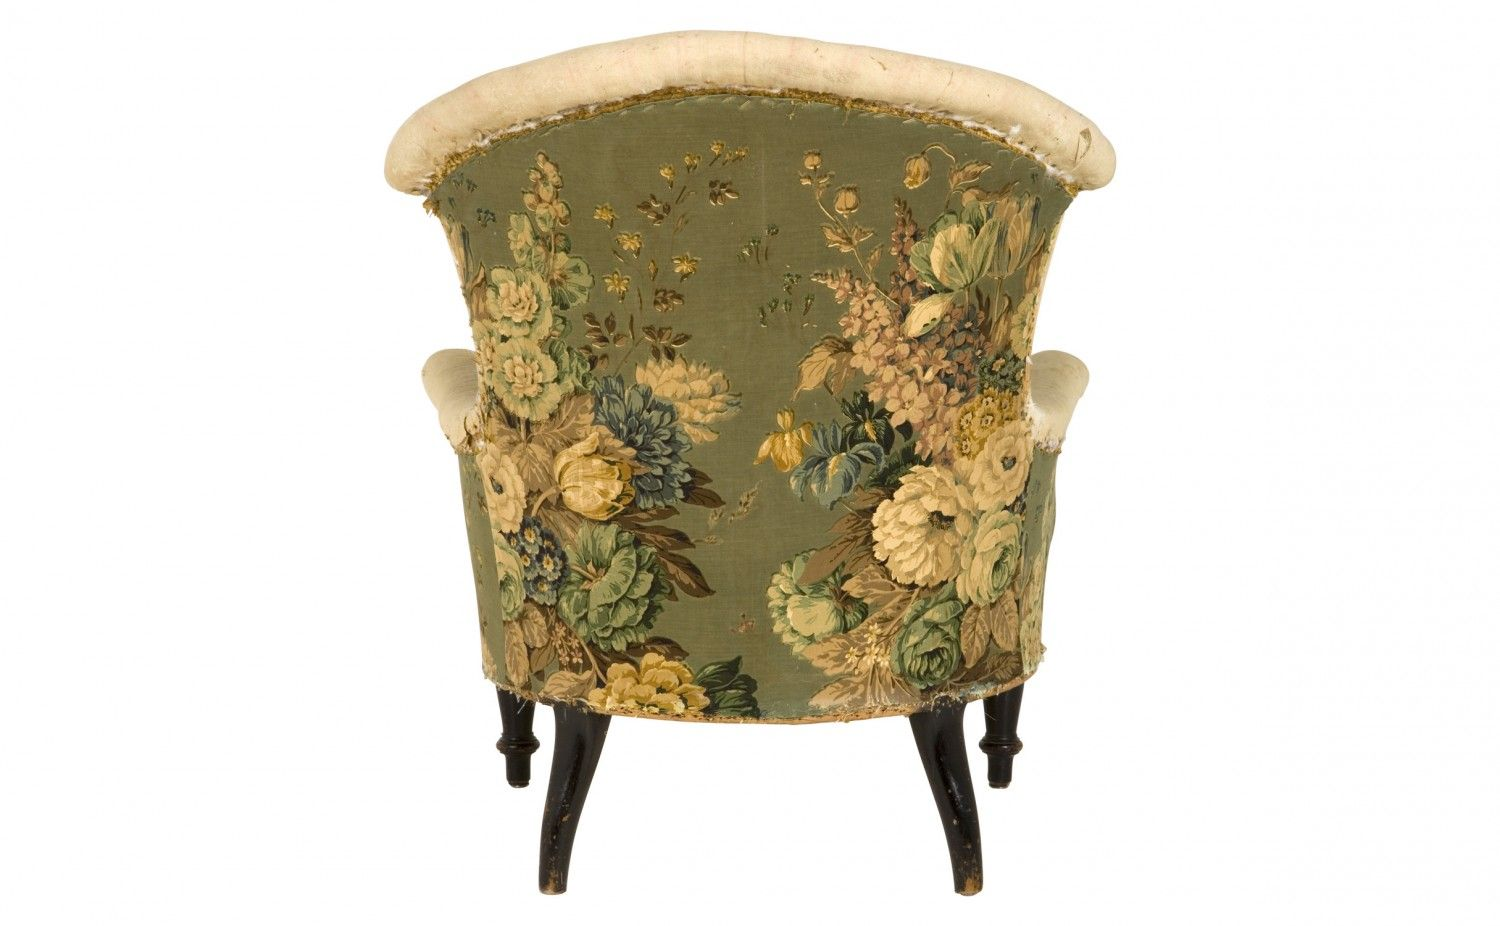 antique bergere chair (back) - Antique Bergere Chair (back) SPACE: Living Pinterest Upholstery